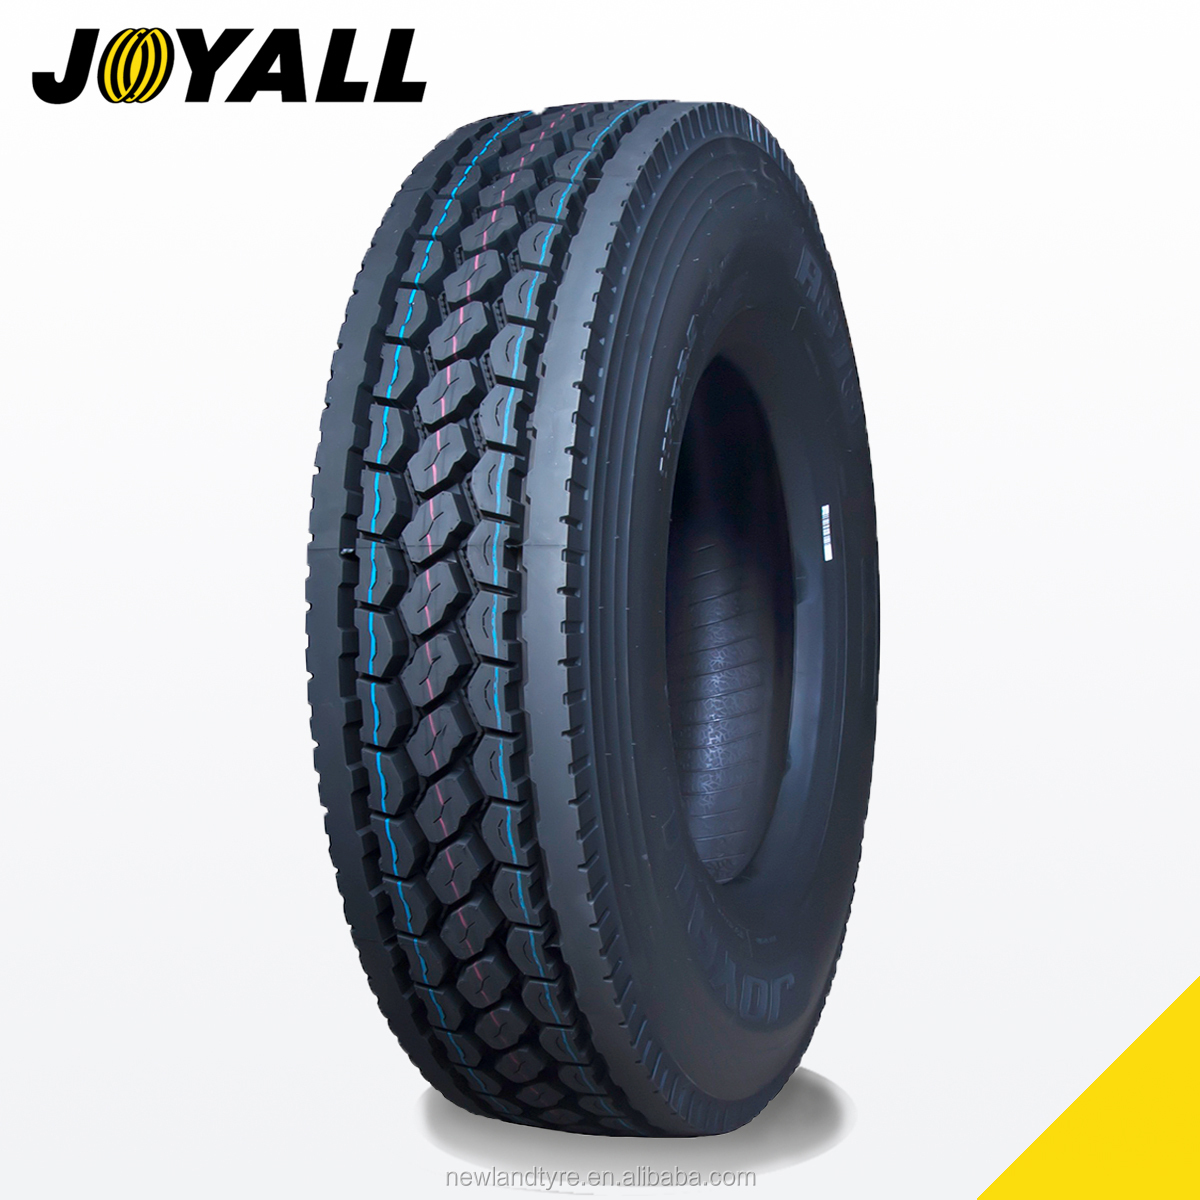 JOYALL RADIAL TRUCK MANUFACTURE <strong>TIRES</strong> 295/75R22.5 11R22.5 11R24.5 Radial Truck tyres